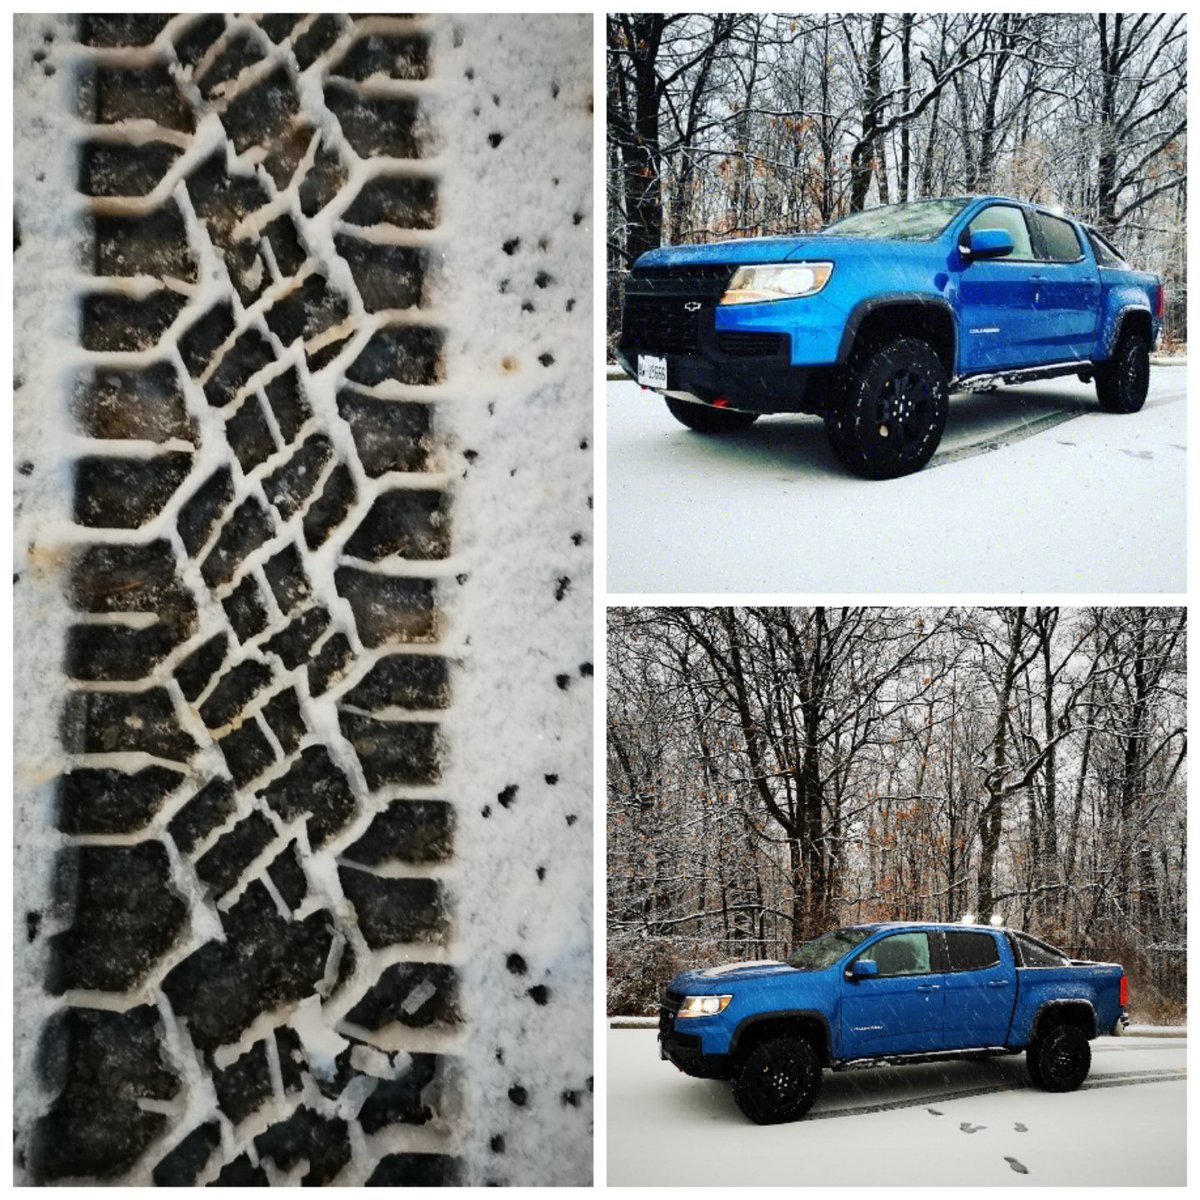 Following the elusive tracks of the 2021 Chevy Colorado ZR2. Having a great time playing in the snow today.  #findnewroads @chevroletcanada #chevy #chevycolorado #chevycoloradozr2 #snow #snowtracks #tracks #photooftheday #photography @huaweimobilecan #prophotographer #testdrive